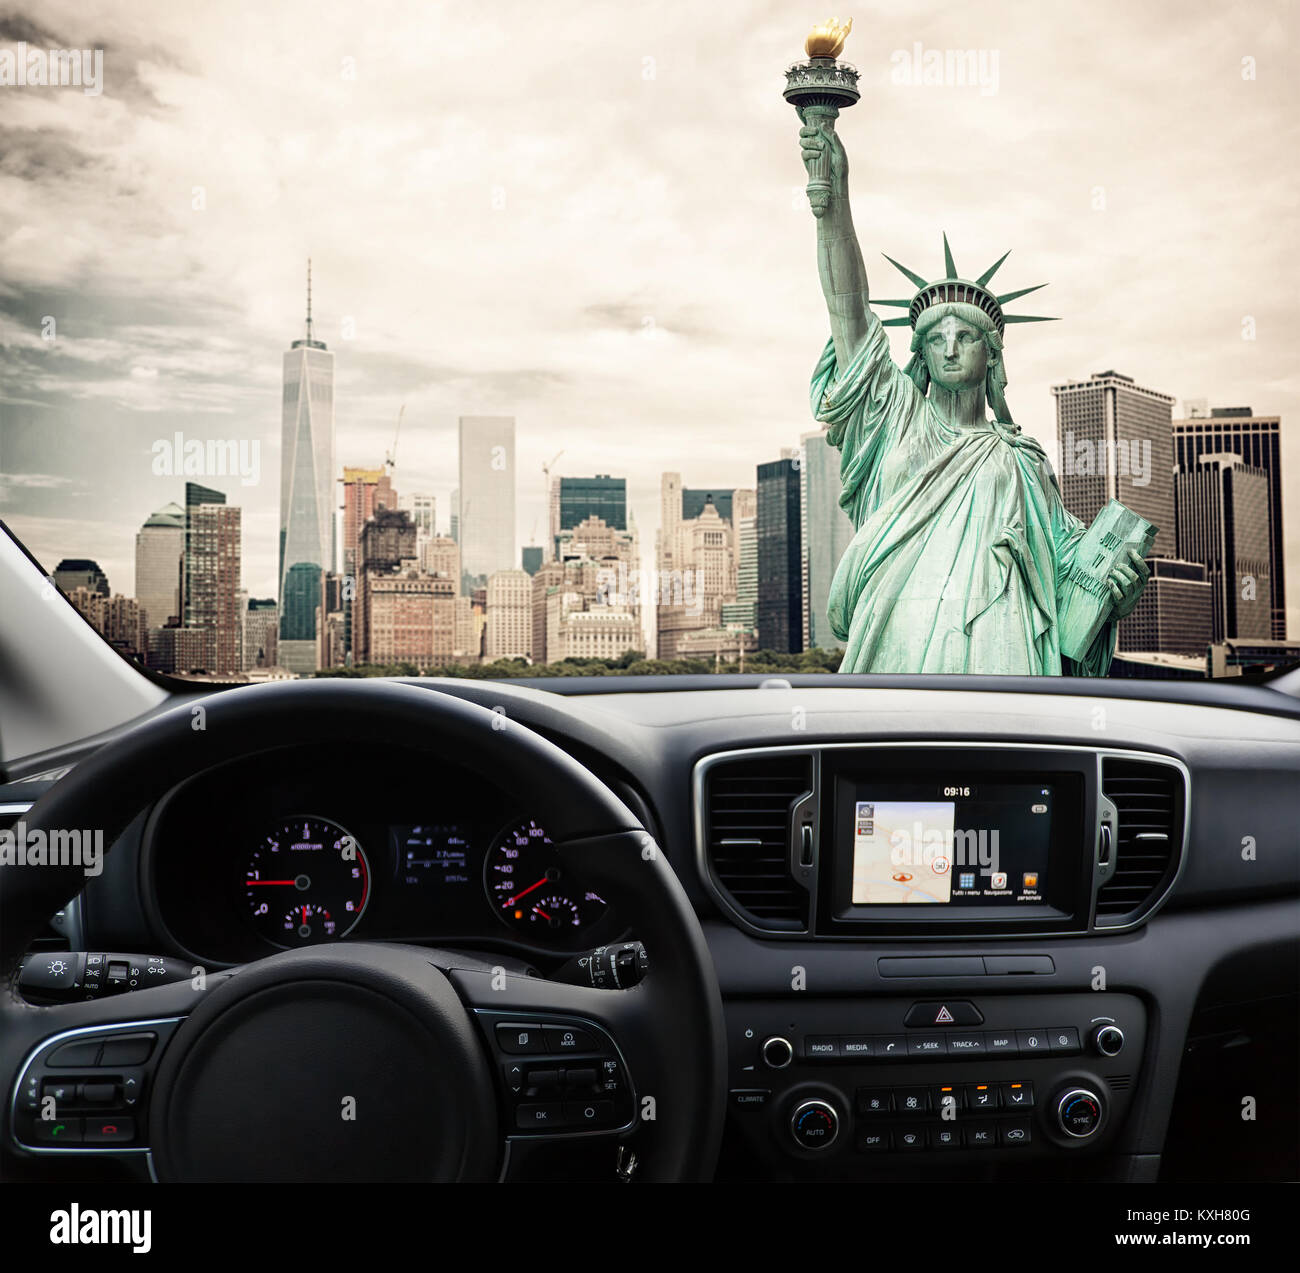 View of a car dashboard with a navigation unit traveling to New York City - Stock Image